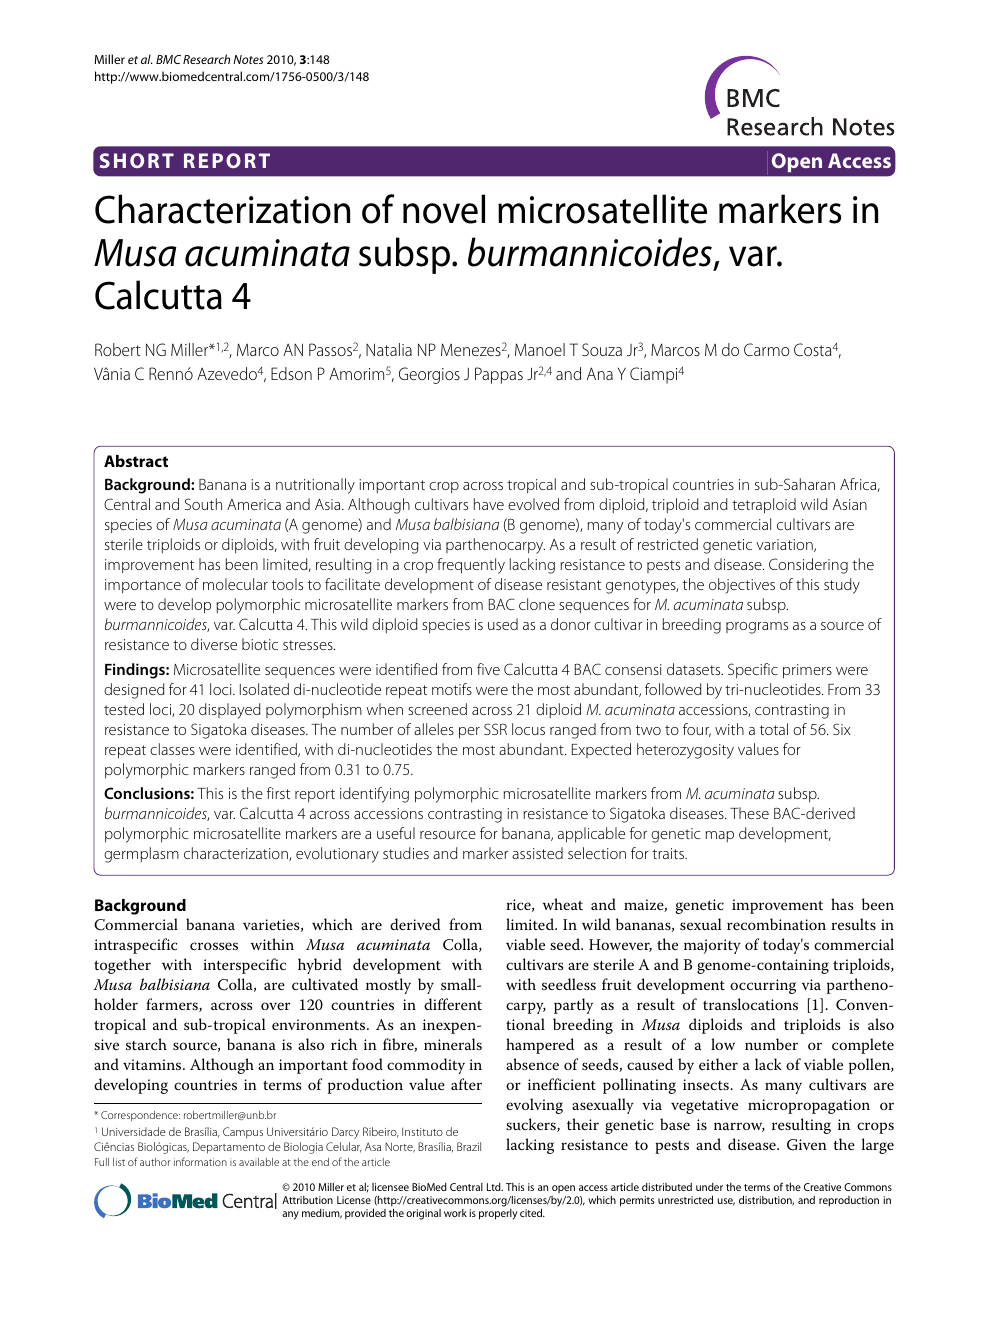 Characterization of novel microsatellite markers in Musa